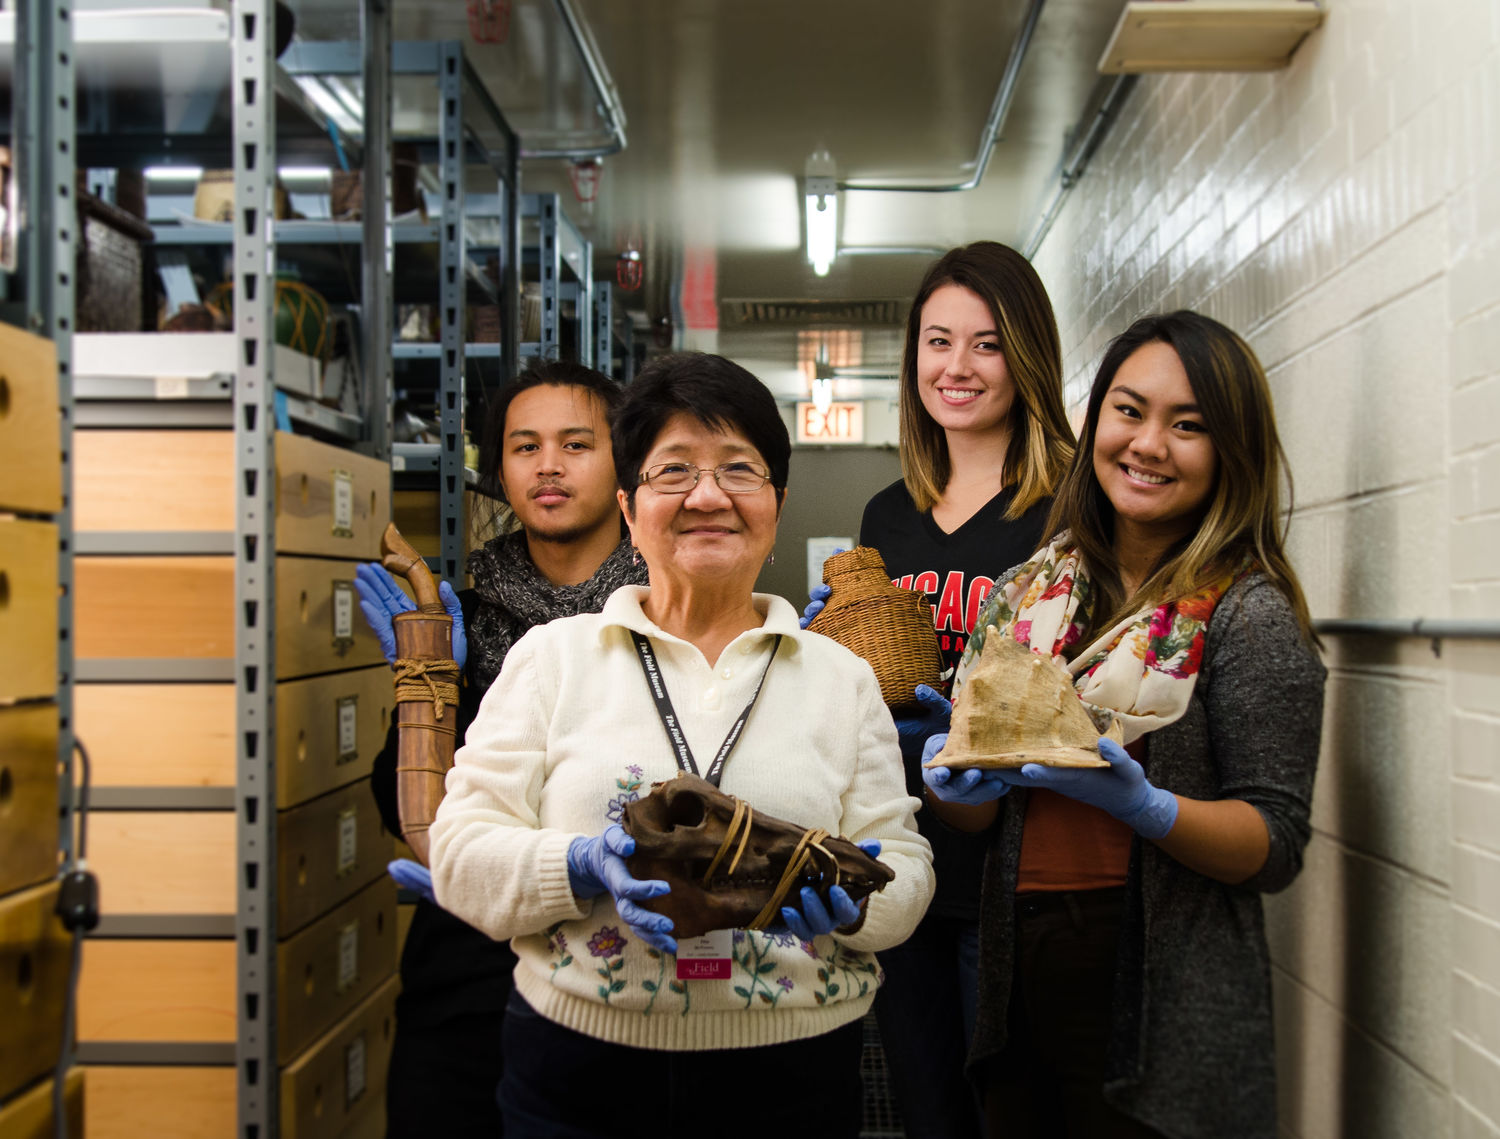 Image depicting volunteers Etta McKenna, Oscar Docto, Tess Madden, and Alpha Sadcopen posing with objects within CAS Mezzanine storeroom. Selected for use on the homepage of the Philippine Heritage Collections interactive web portal. [Copyright] Field Museum of Natural History - CC BY-NC